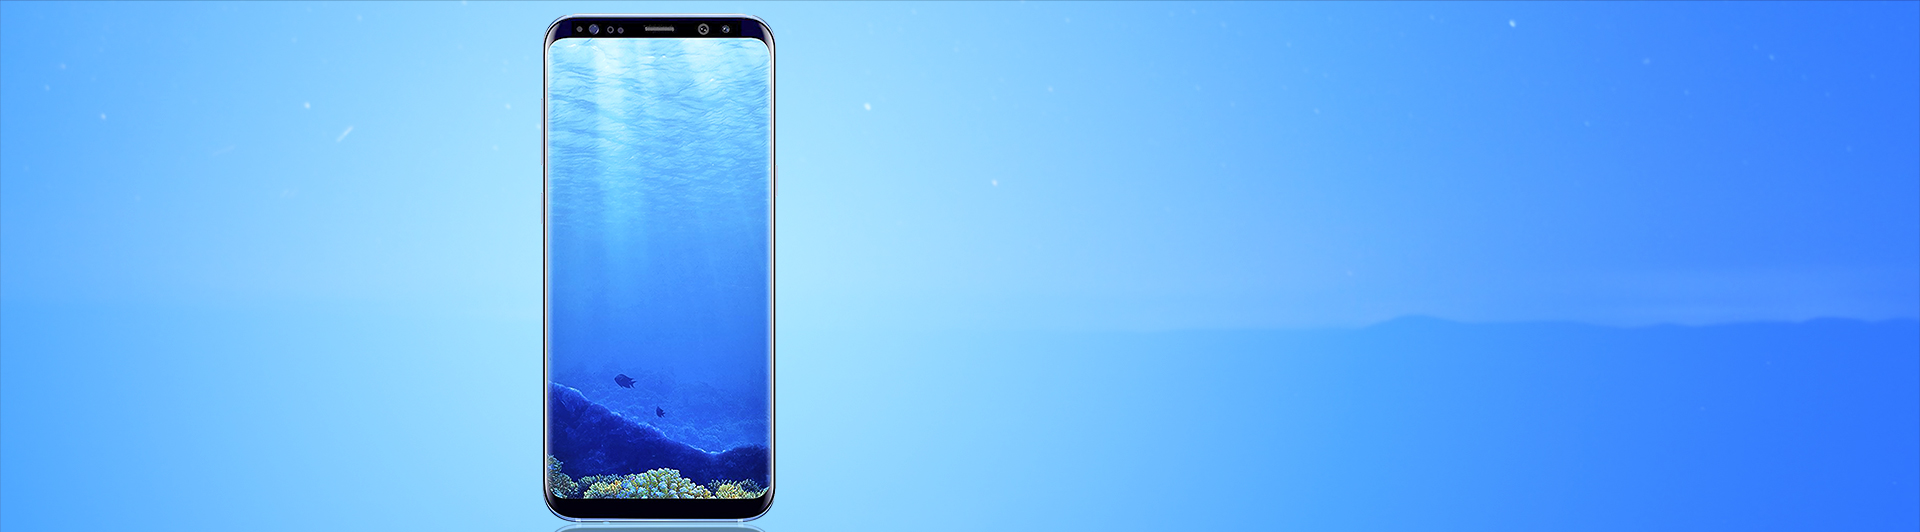 SAMSUNG GALAXY S8 PLUS XANH